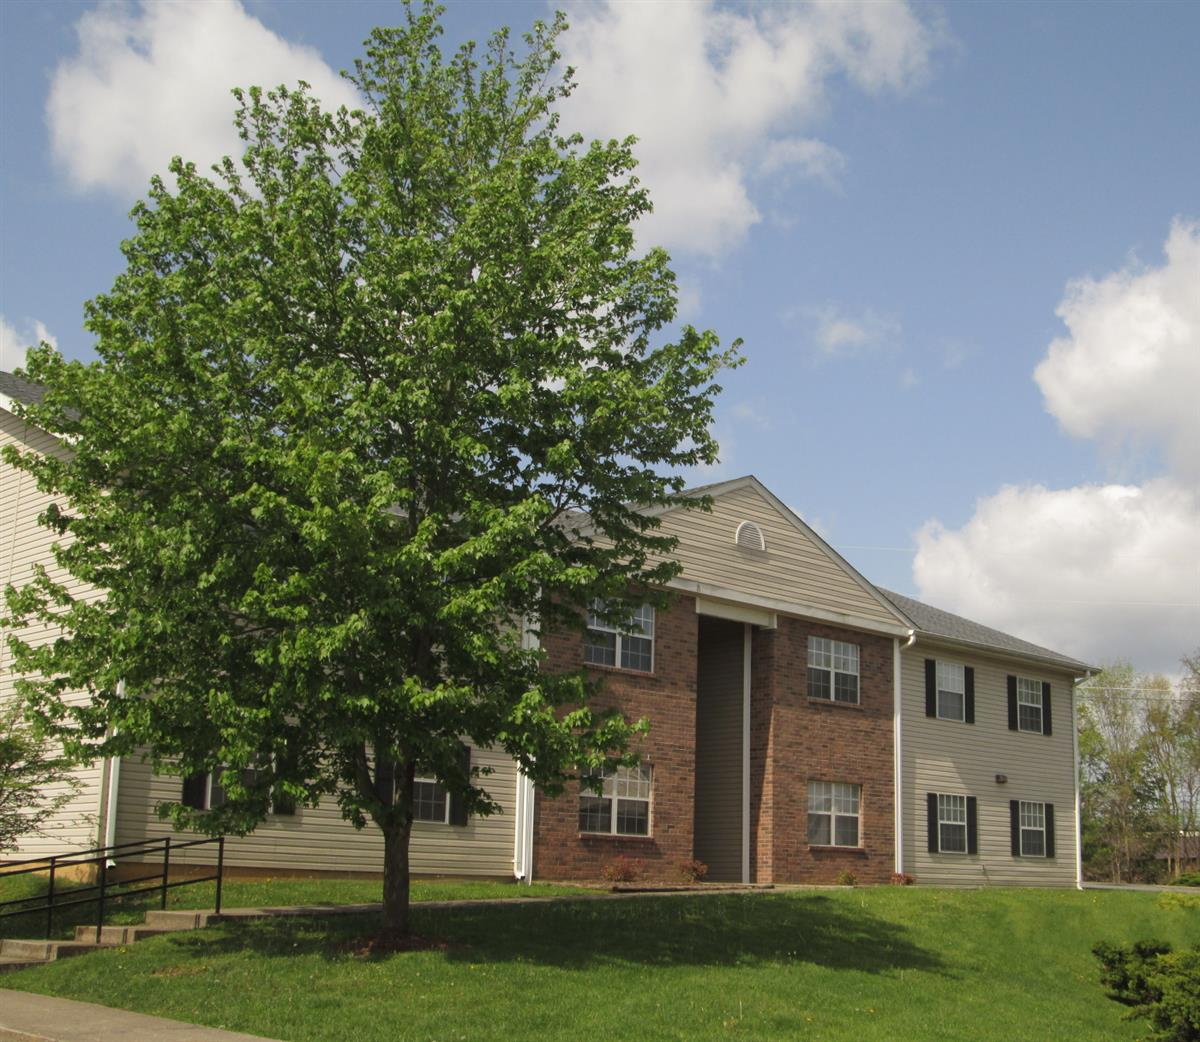 Apartments For Rent In Johnson City Tn: Stoneybrook Heights Apartments